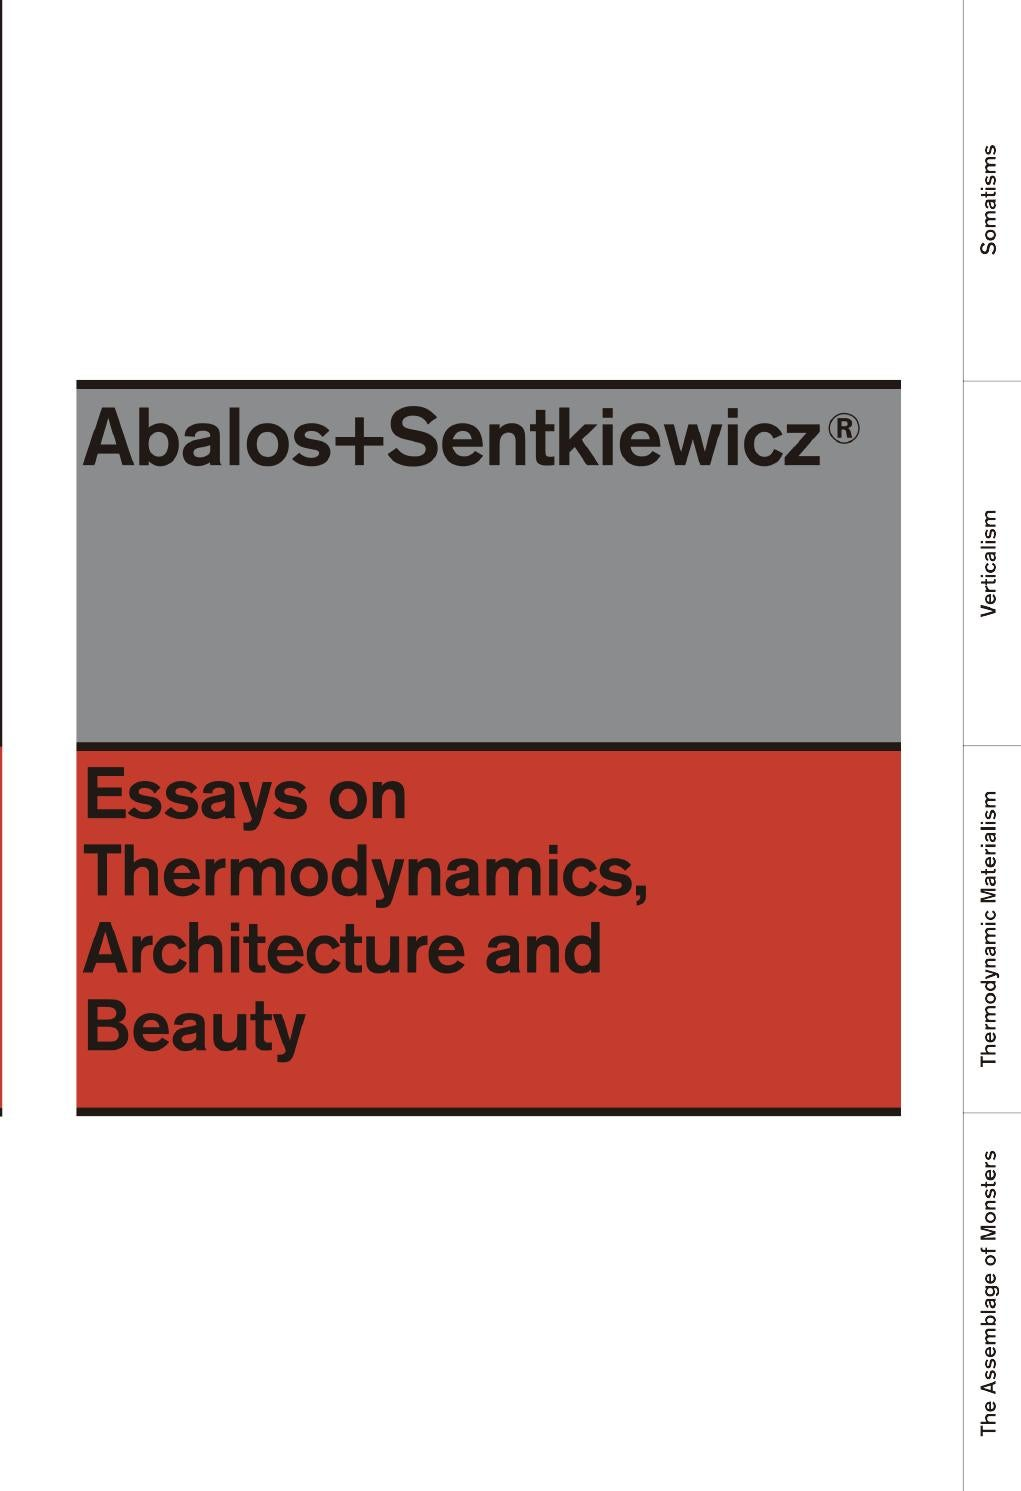 abalos sentkiewicz essays on thermodynamics architecture and abalos sentkiewicz essays on thermodynamics architecture and beauty by actar publishers issuu